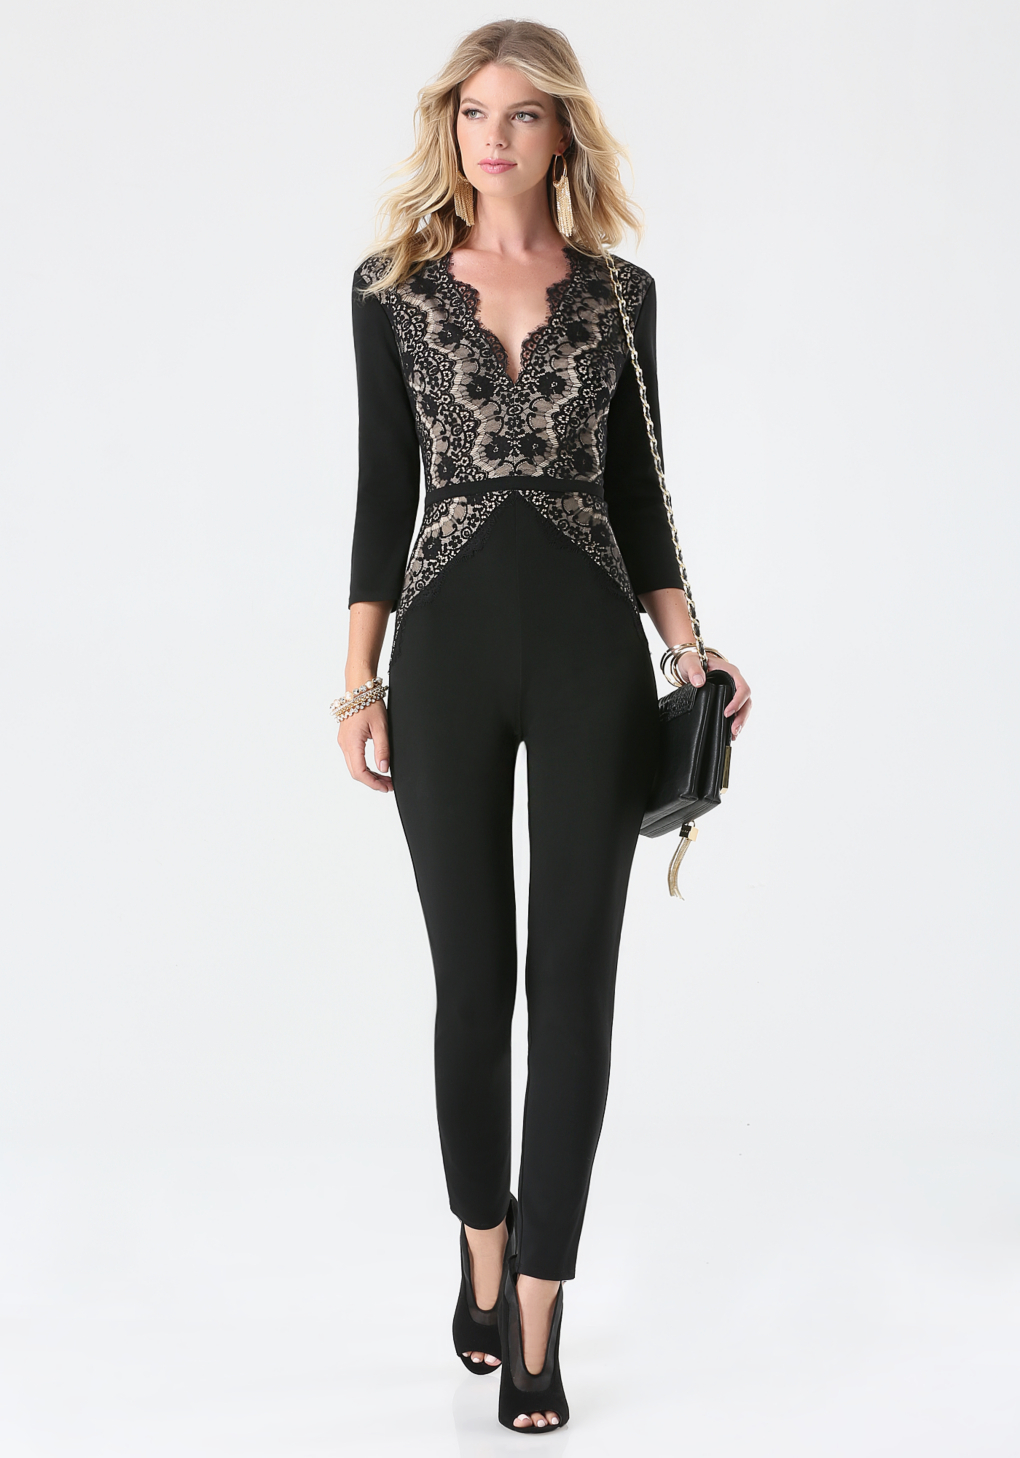 Bebe Petite Magda Lace Jumpsuit in Black | Lyst